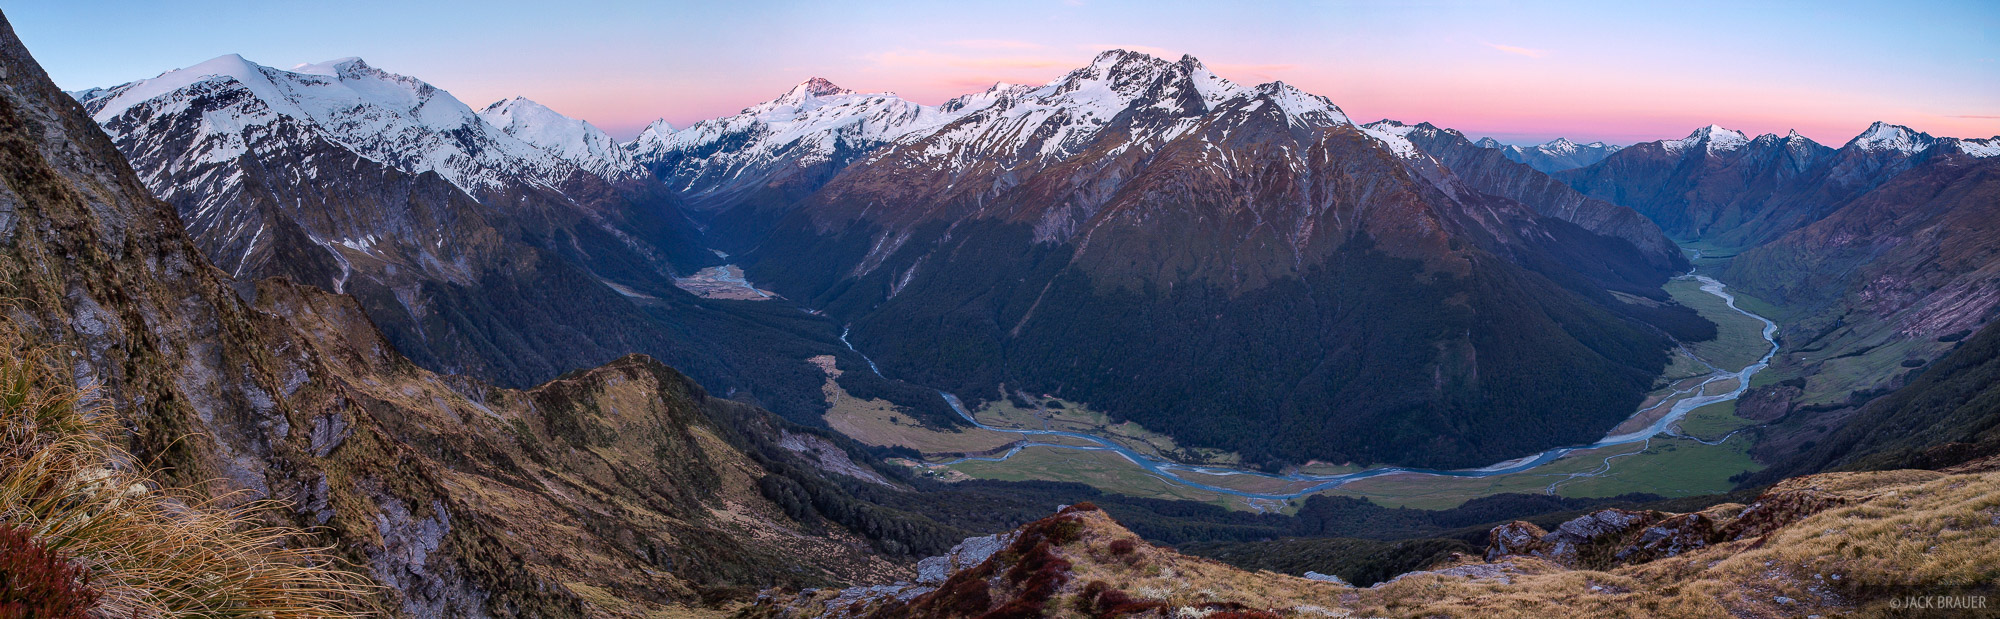 Matukituki, panorama, Mt. Aspiring, New Zealand, photo